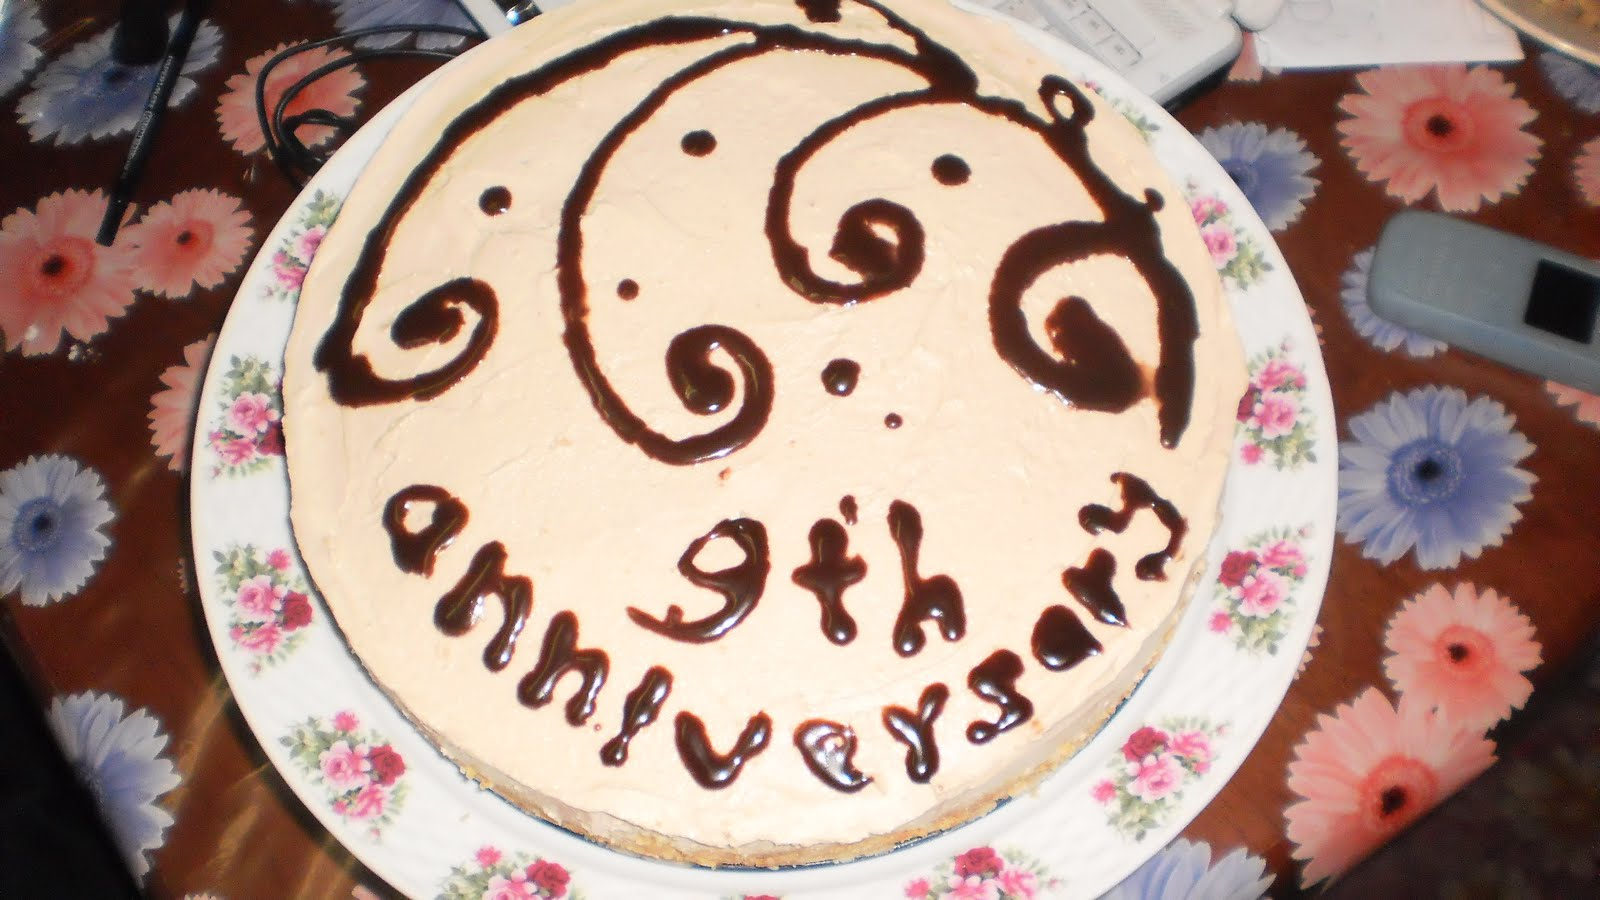 9th Year Wedding Anniversary Gifts: Sacredrecipes: My 9th Anniversary Cake